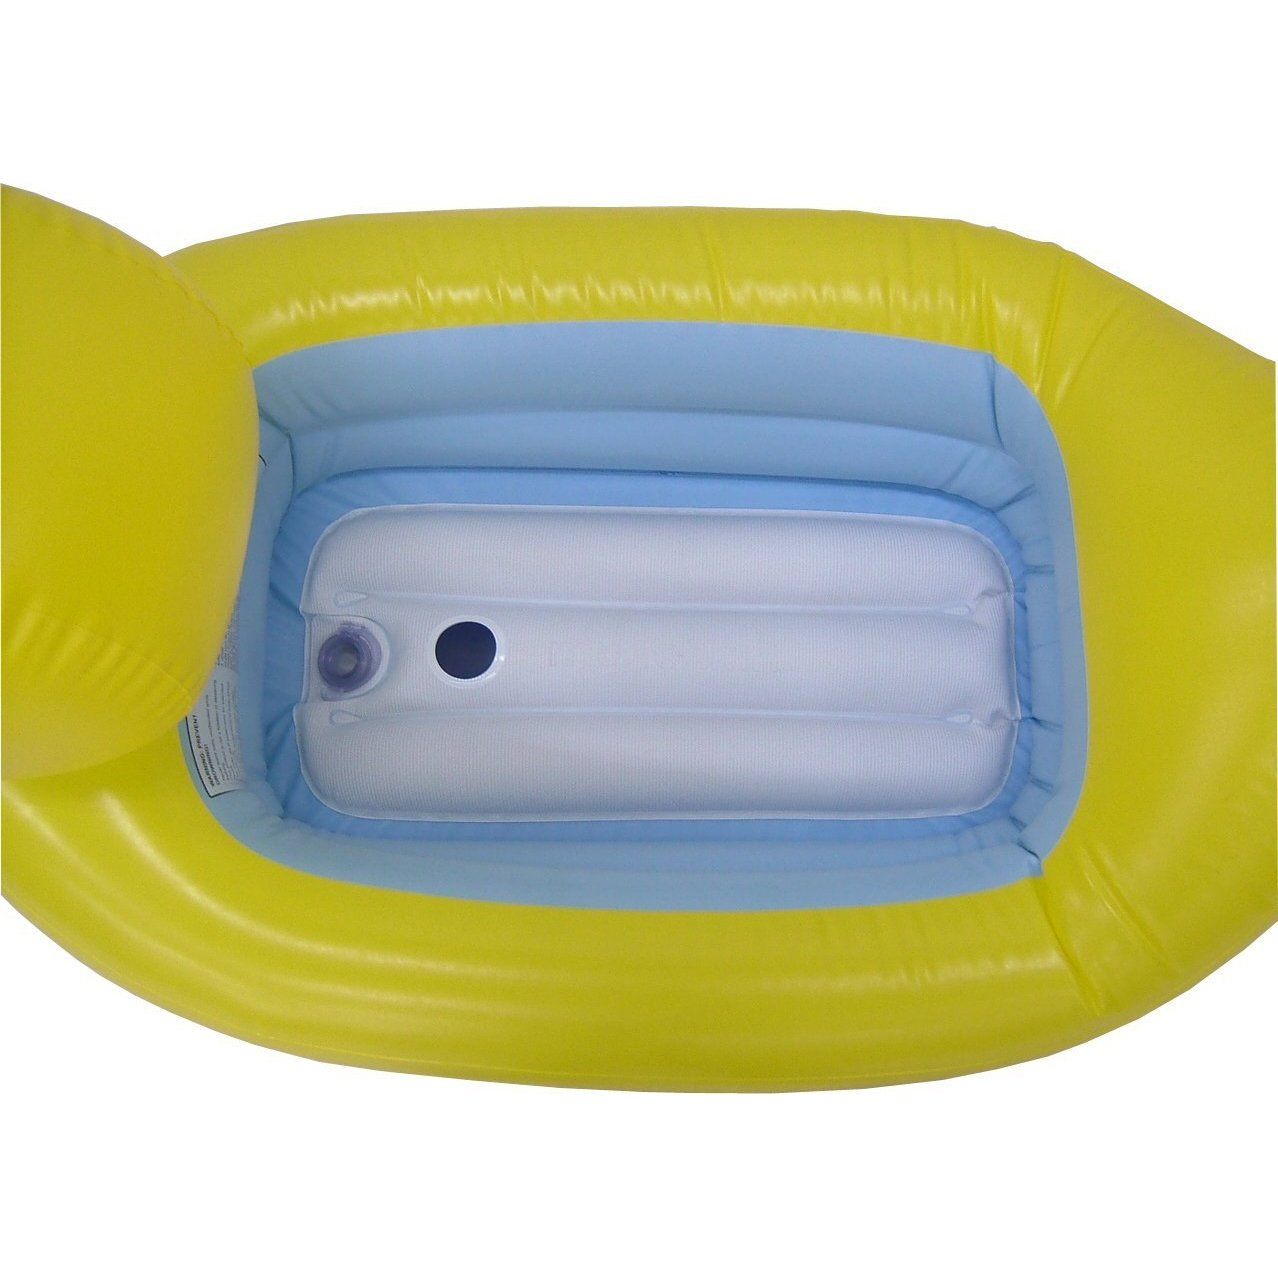 Vee Baby Shop Munchkin White Hot Inflatable Duck Tub